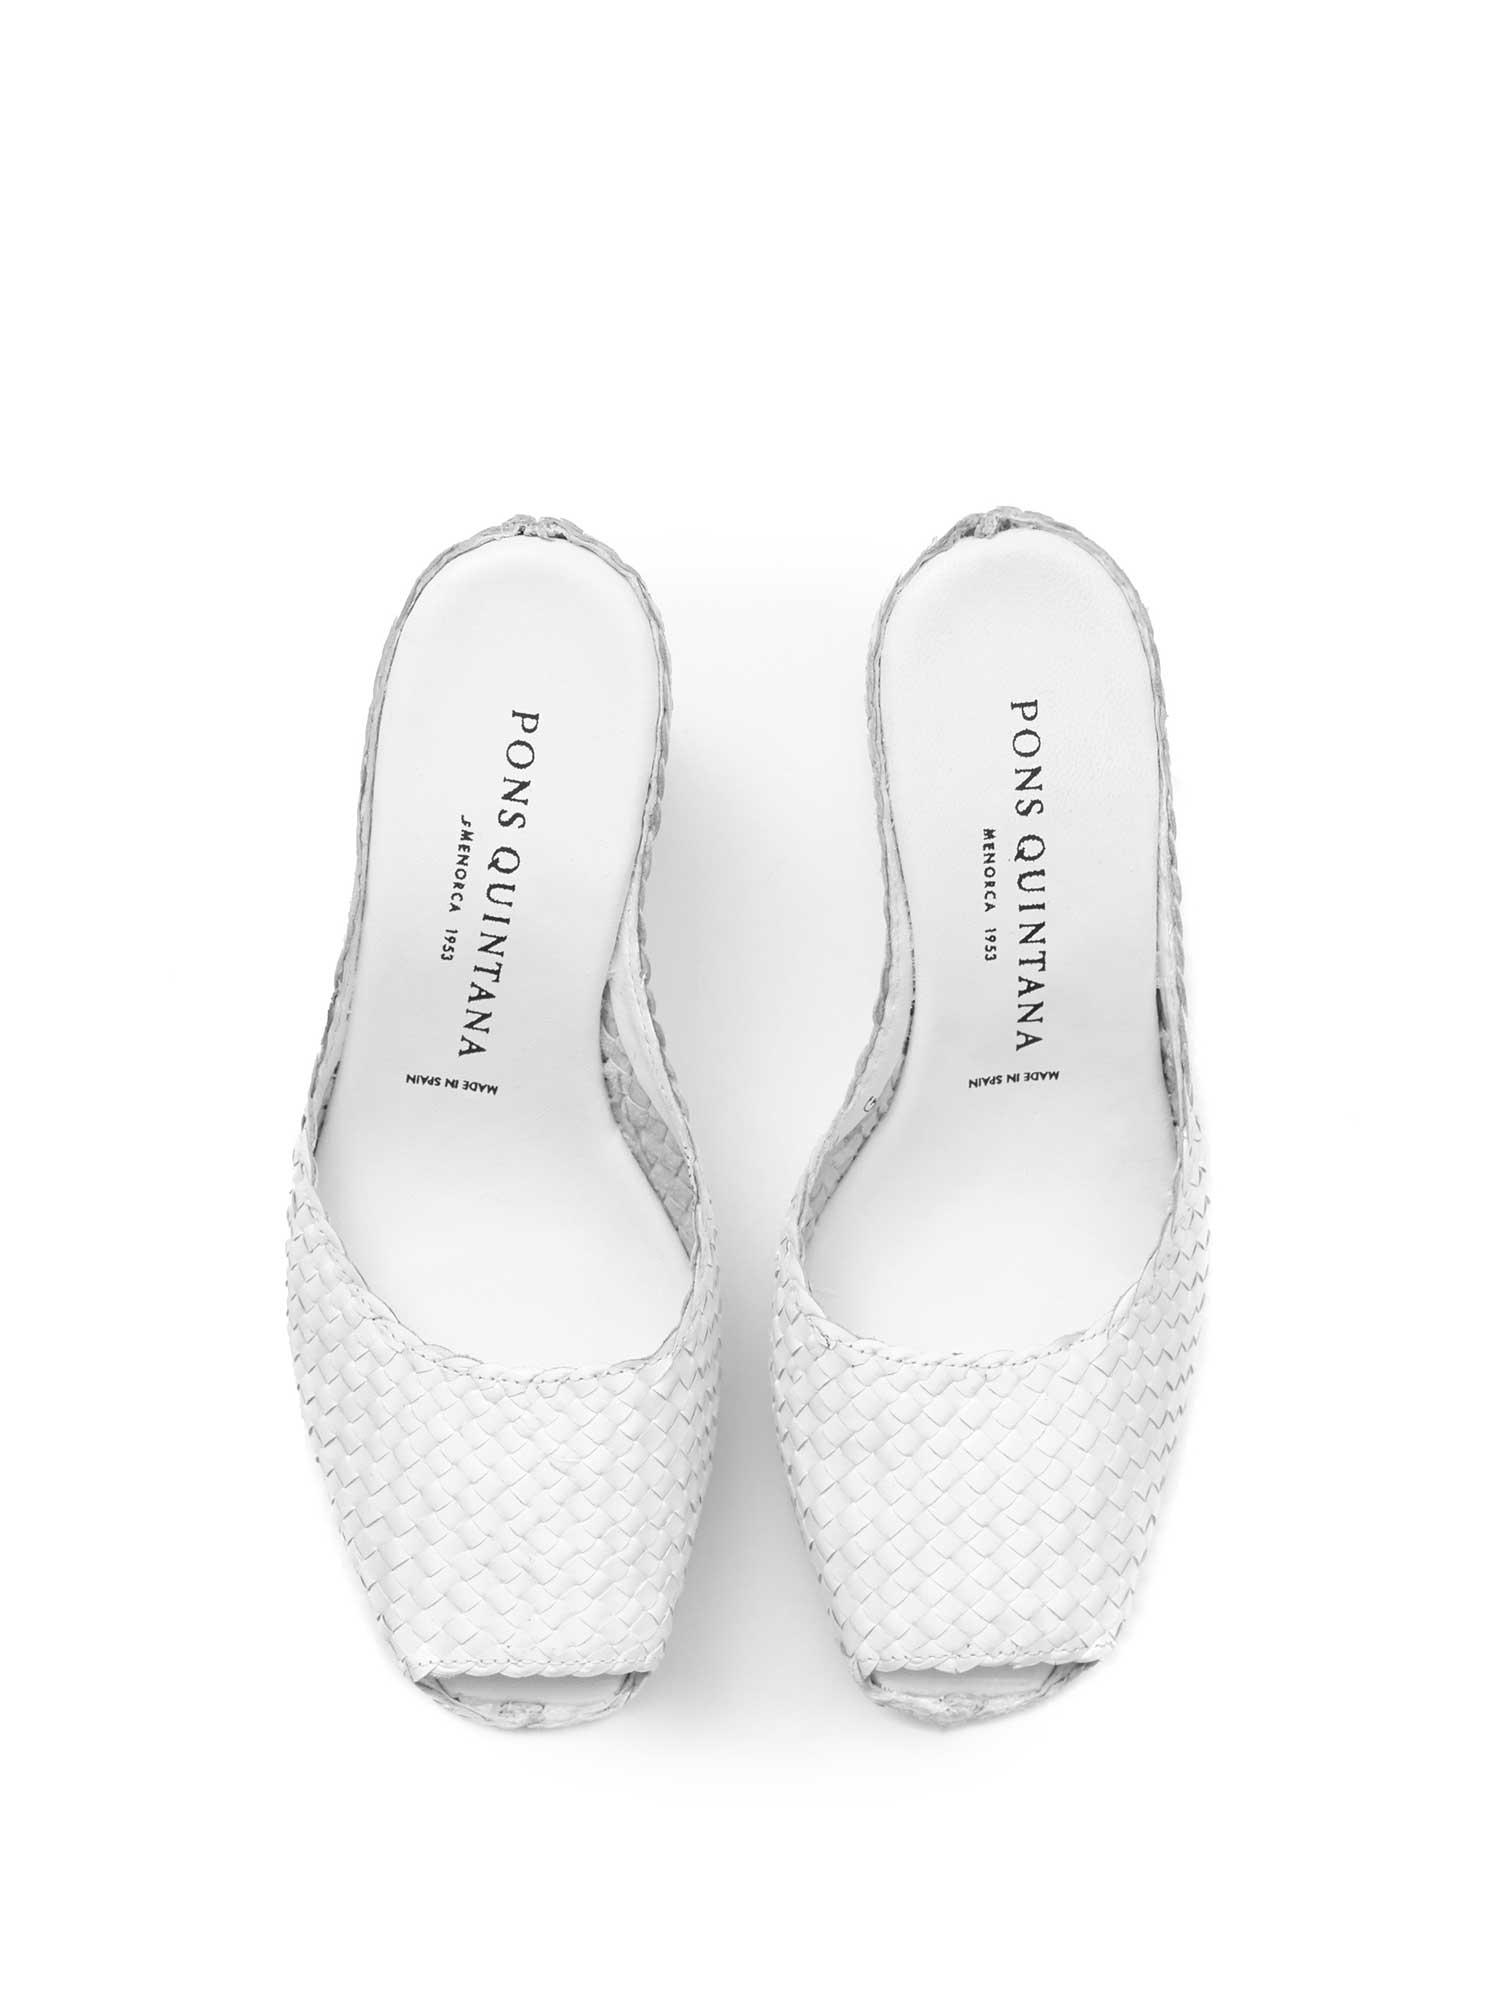 WHITE BRAIDED PLATFORM SANDAL